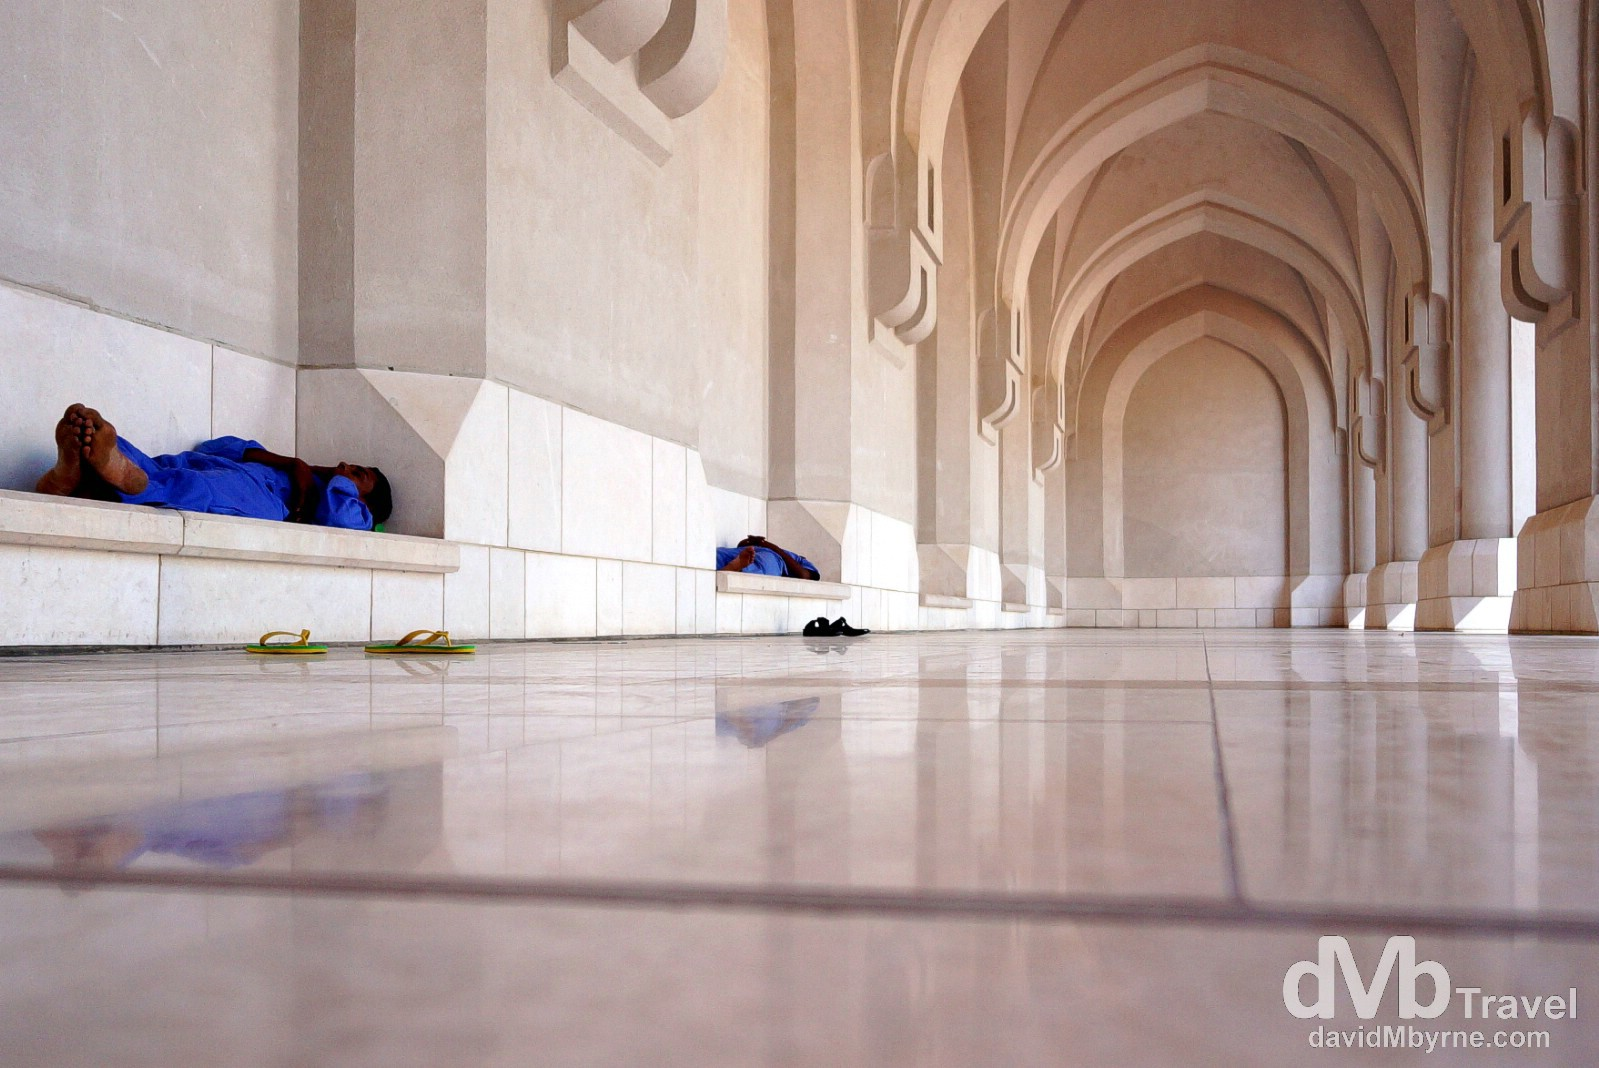 Taking a mid-afternoon nap in the grounds of Al Alam/Sultan's Palace, Muscat, Oman. April 26th, 2014.